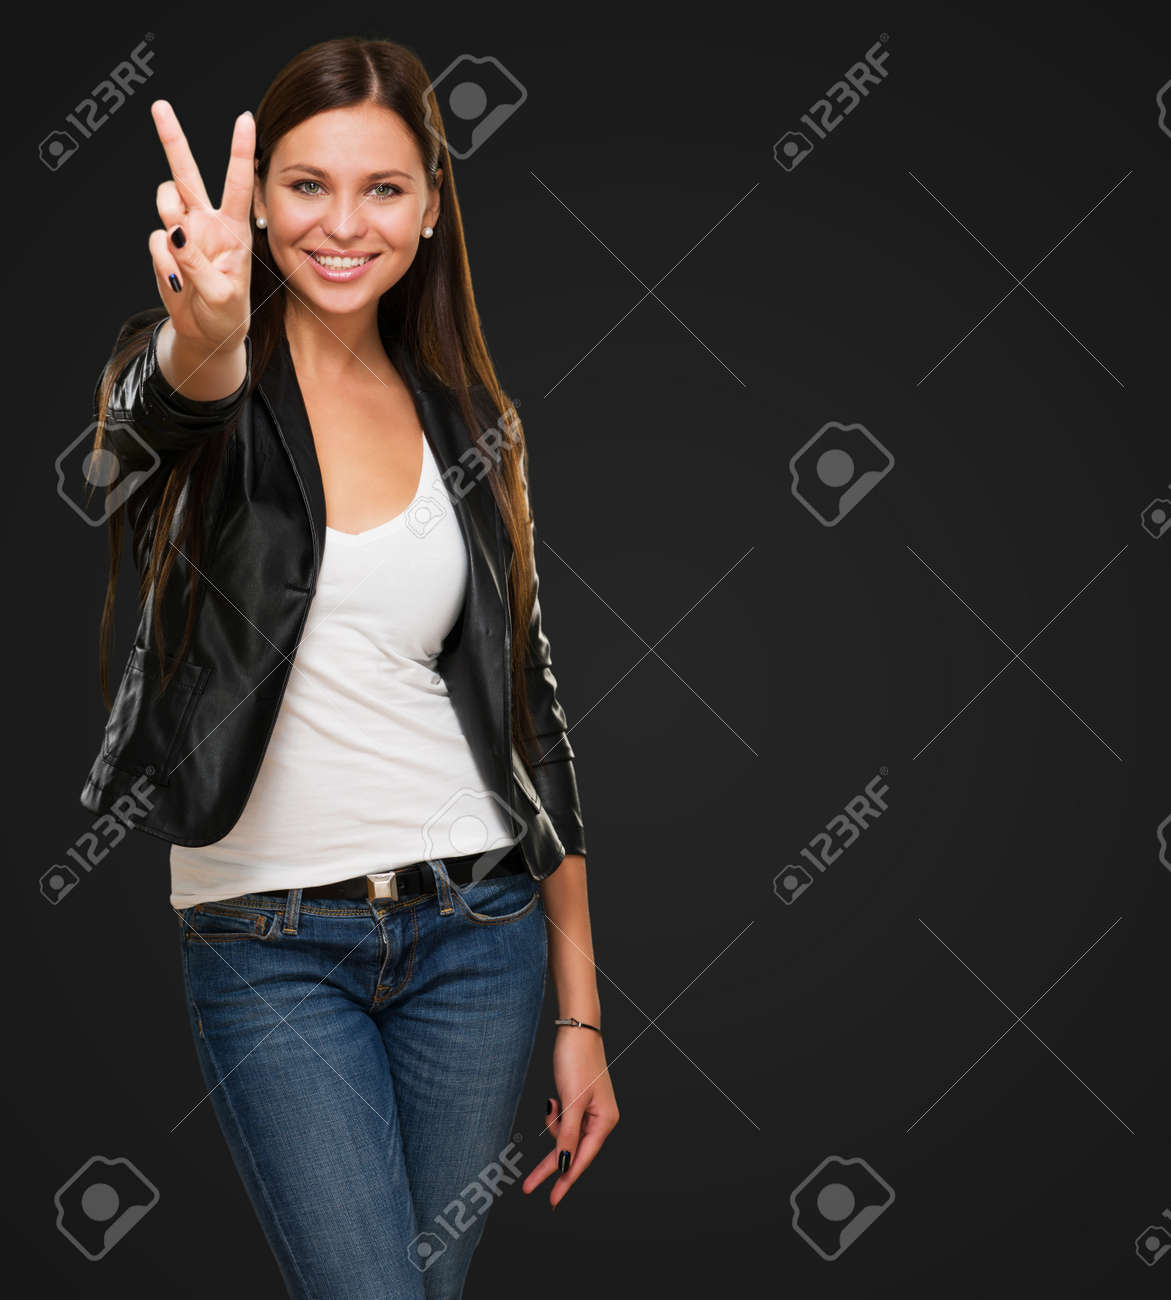 Beautiful Woman Giving Victory Sign against a black background - 16672549